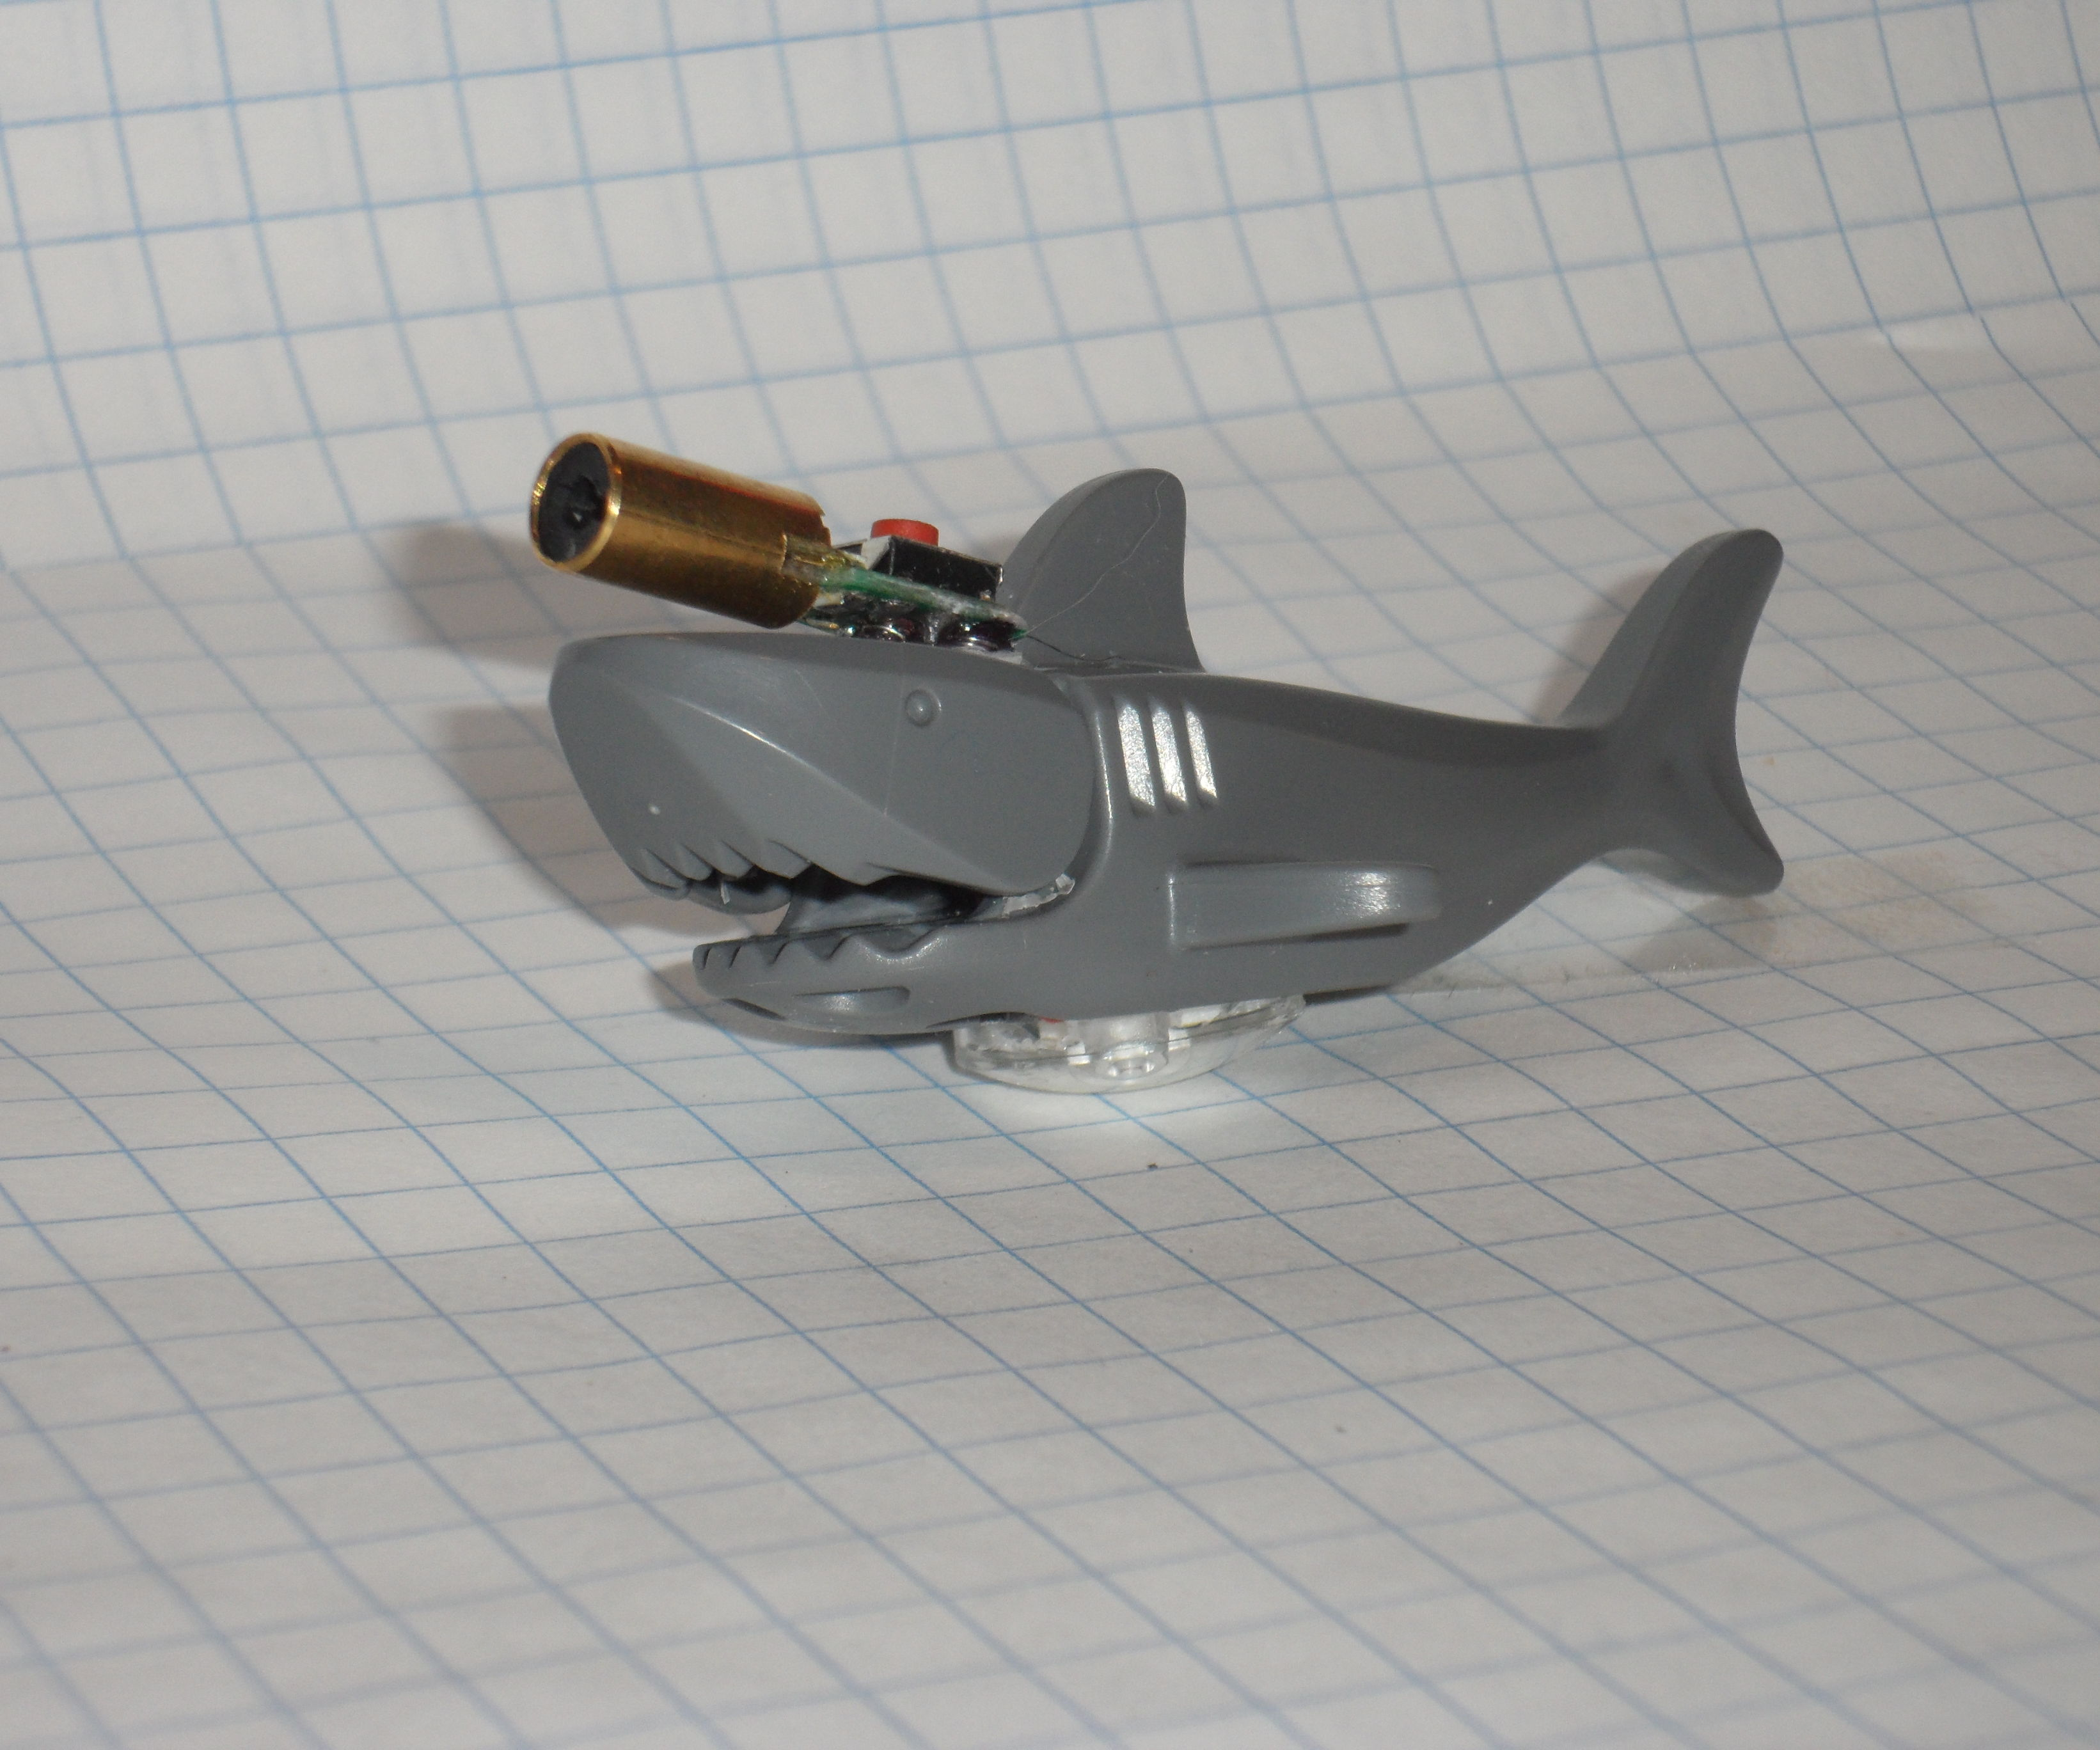 Lego shark with a frickin laser on its head